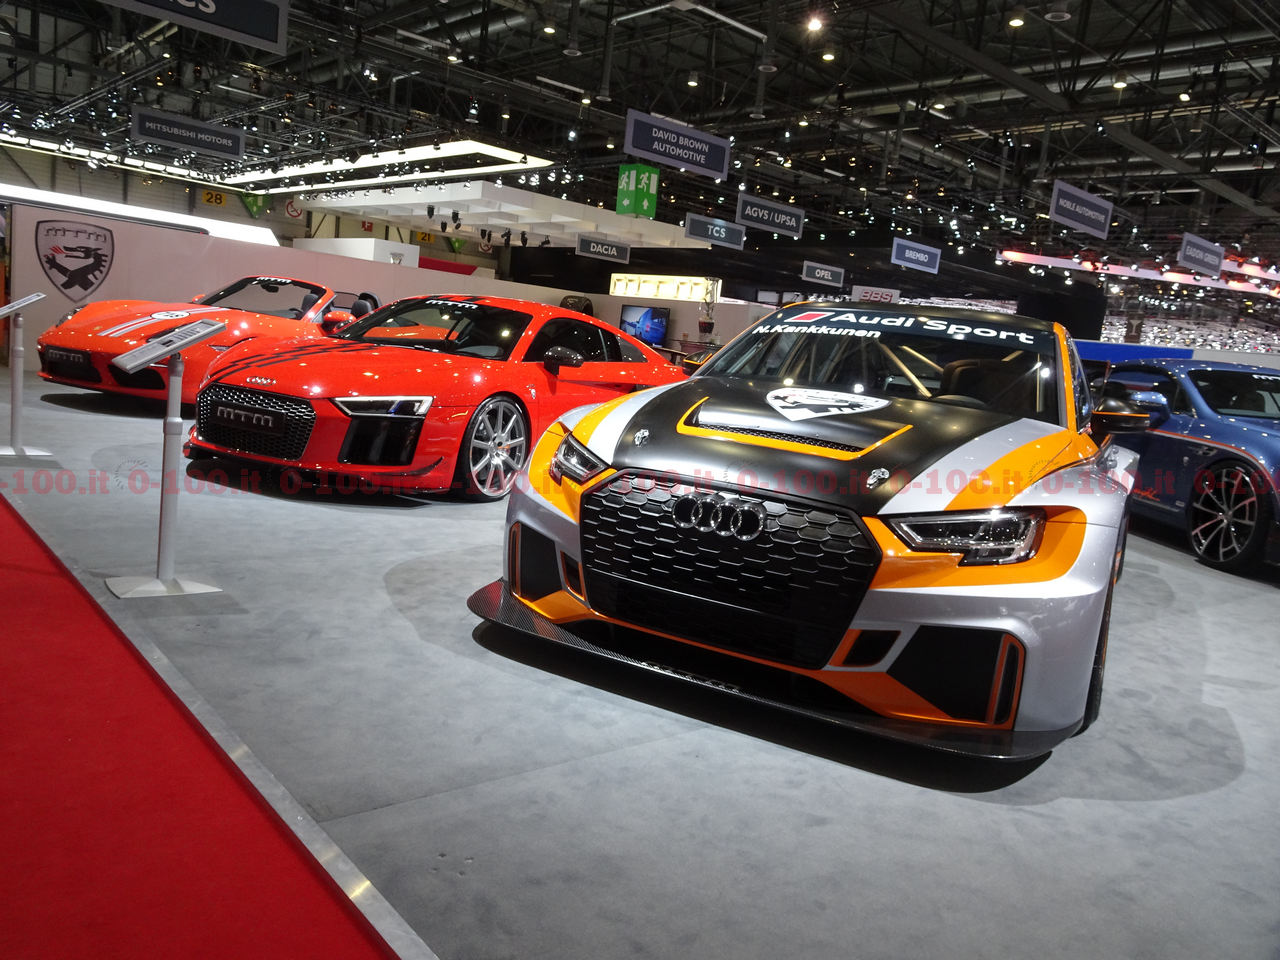 SPECIALE Ginevra 2017 / TUNING: lo stand MTM